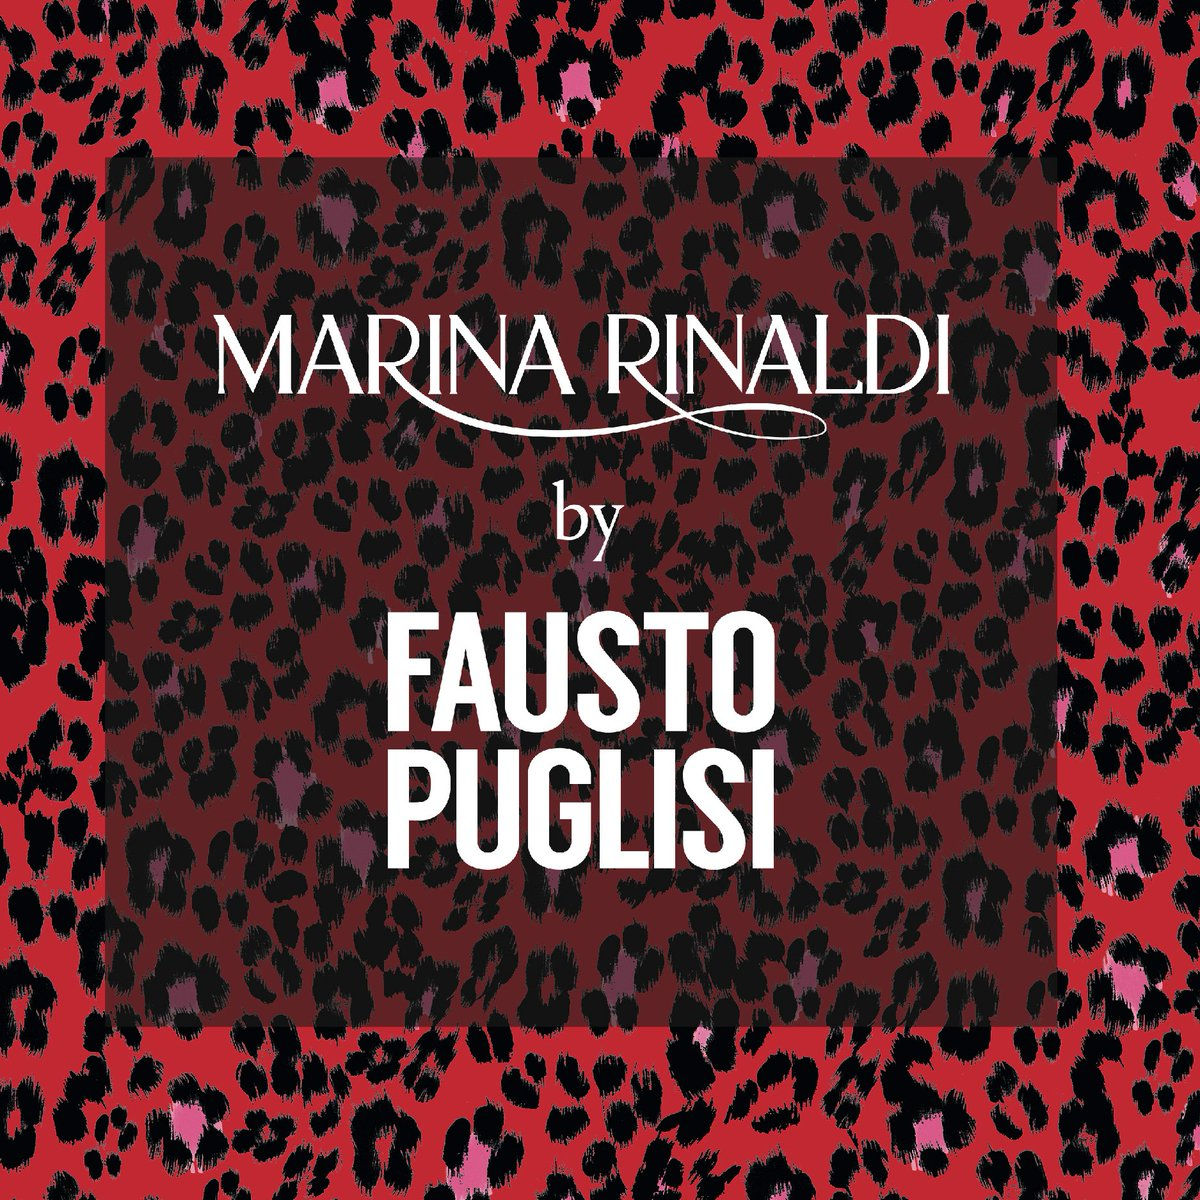 4a5a50d1233 This refined and glamour capsule collection was born from Fausto Puglisi's  pure expressive energy and passion. It features a vortex of optical prints,  ...